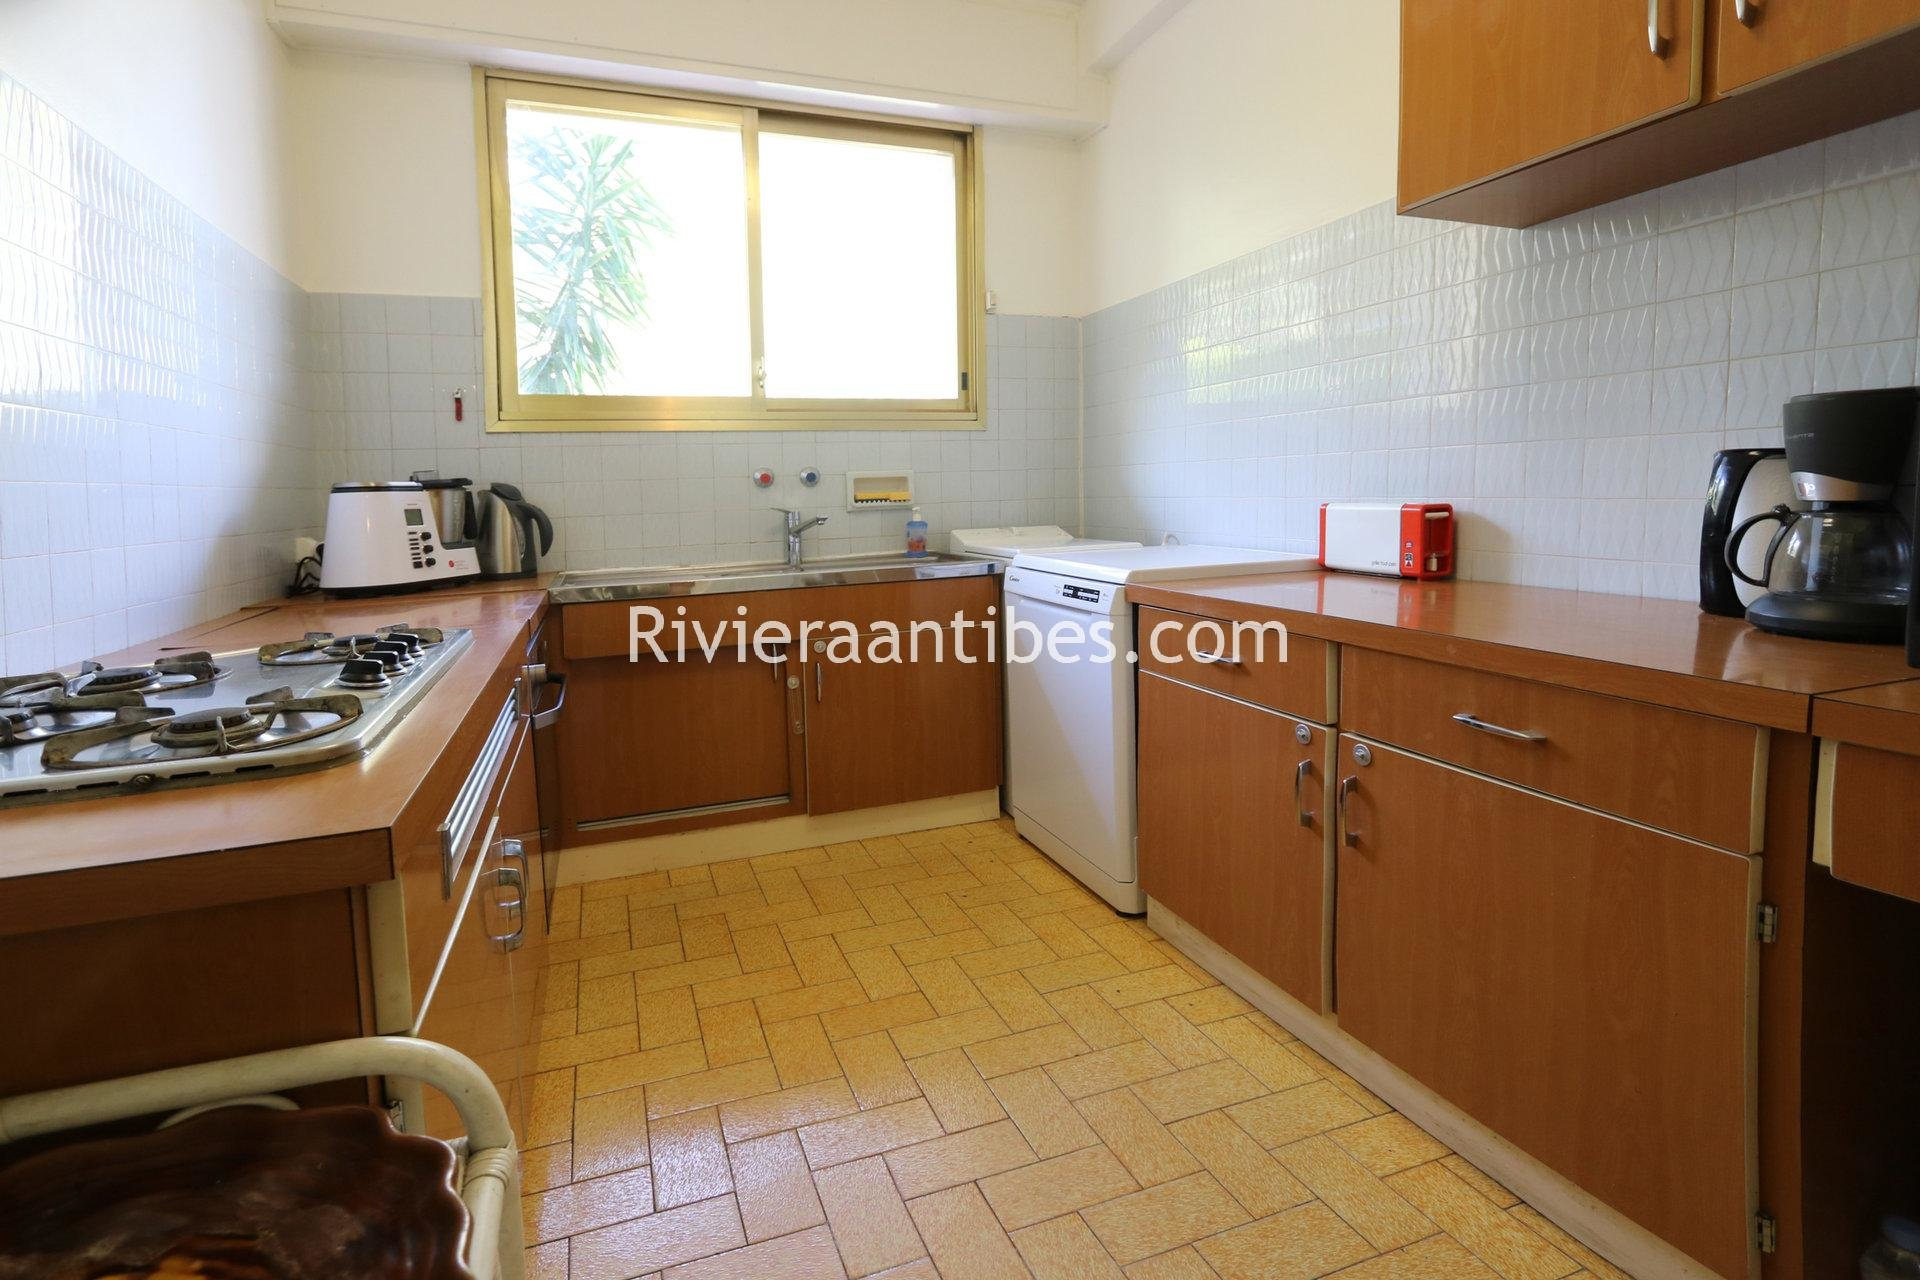 Vast 2 bedrooms with large terrace, swimming pool and garage.